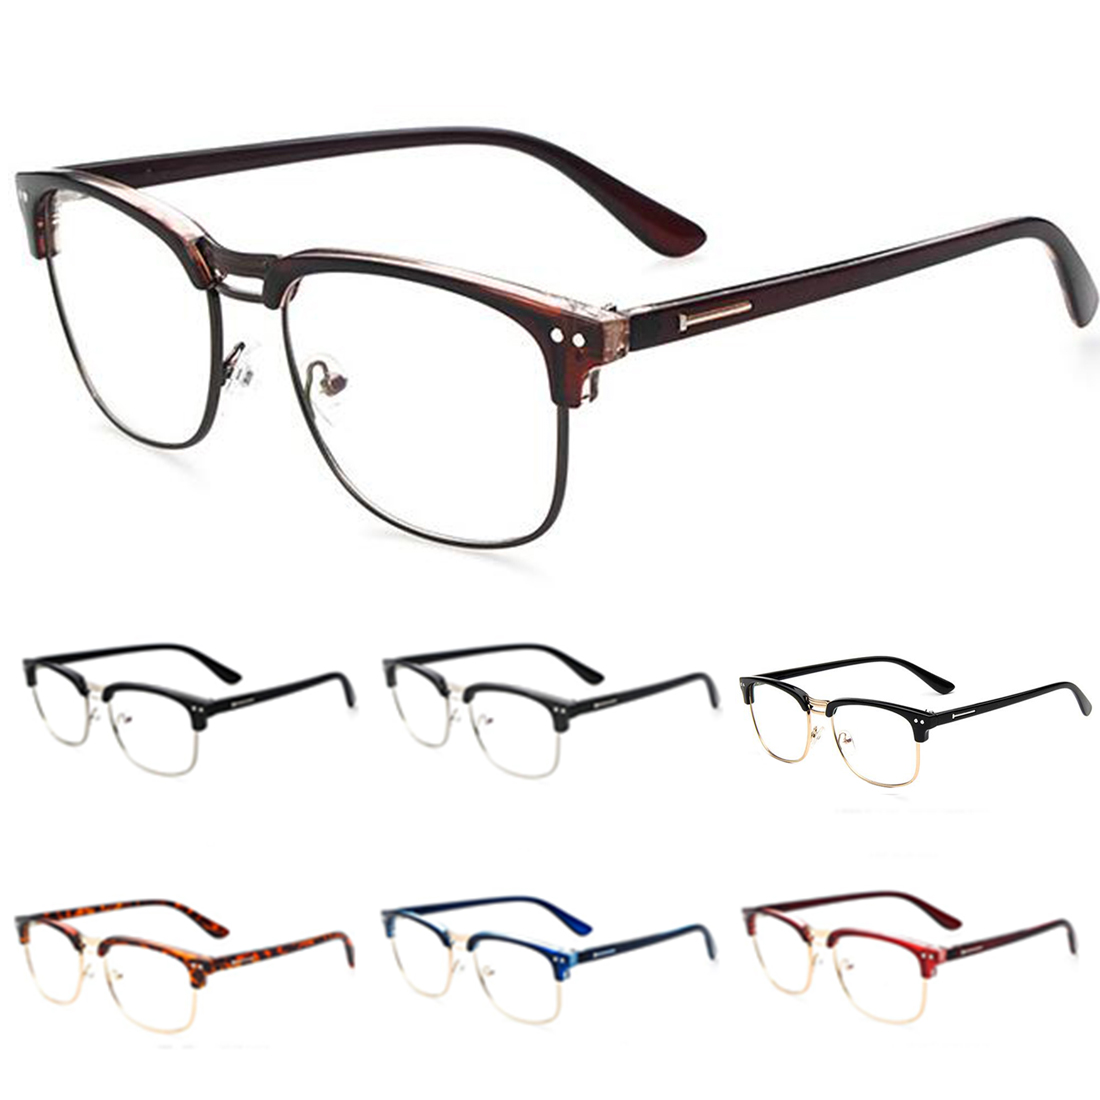 Half Frame Glasses Lenskart : 2016 Fashion Metal Half Frame Glasses Frame Retro Women ...